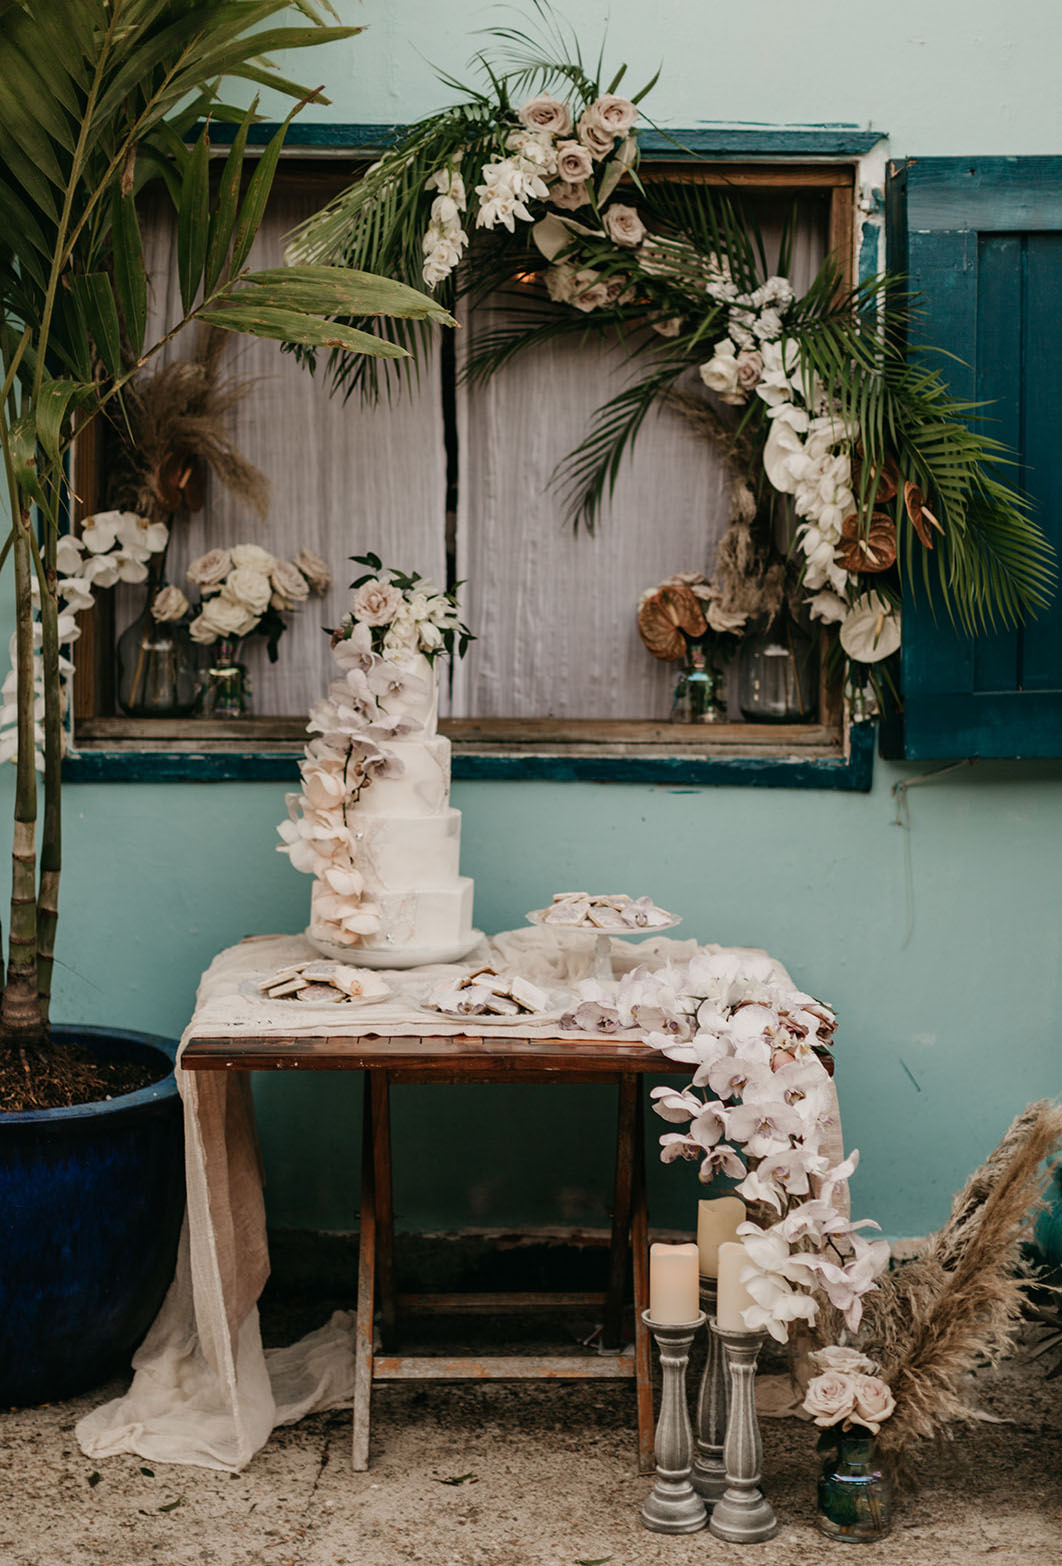 The tropical decor was amazing and romantic, with lush florals and tropical foliage